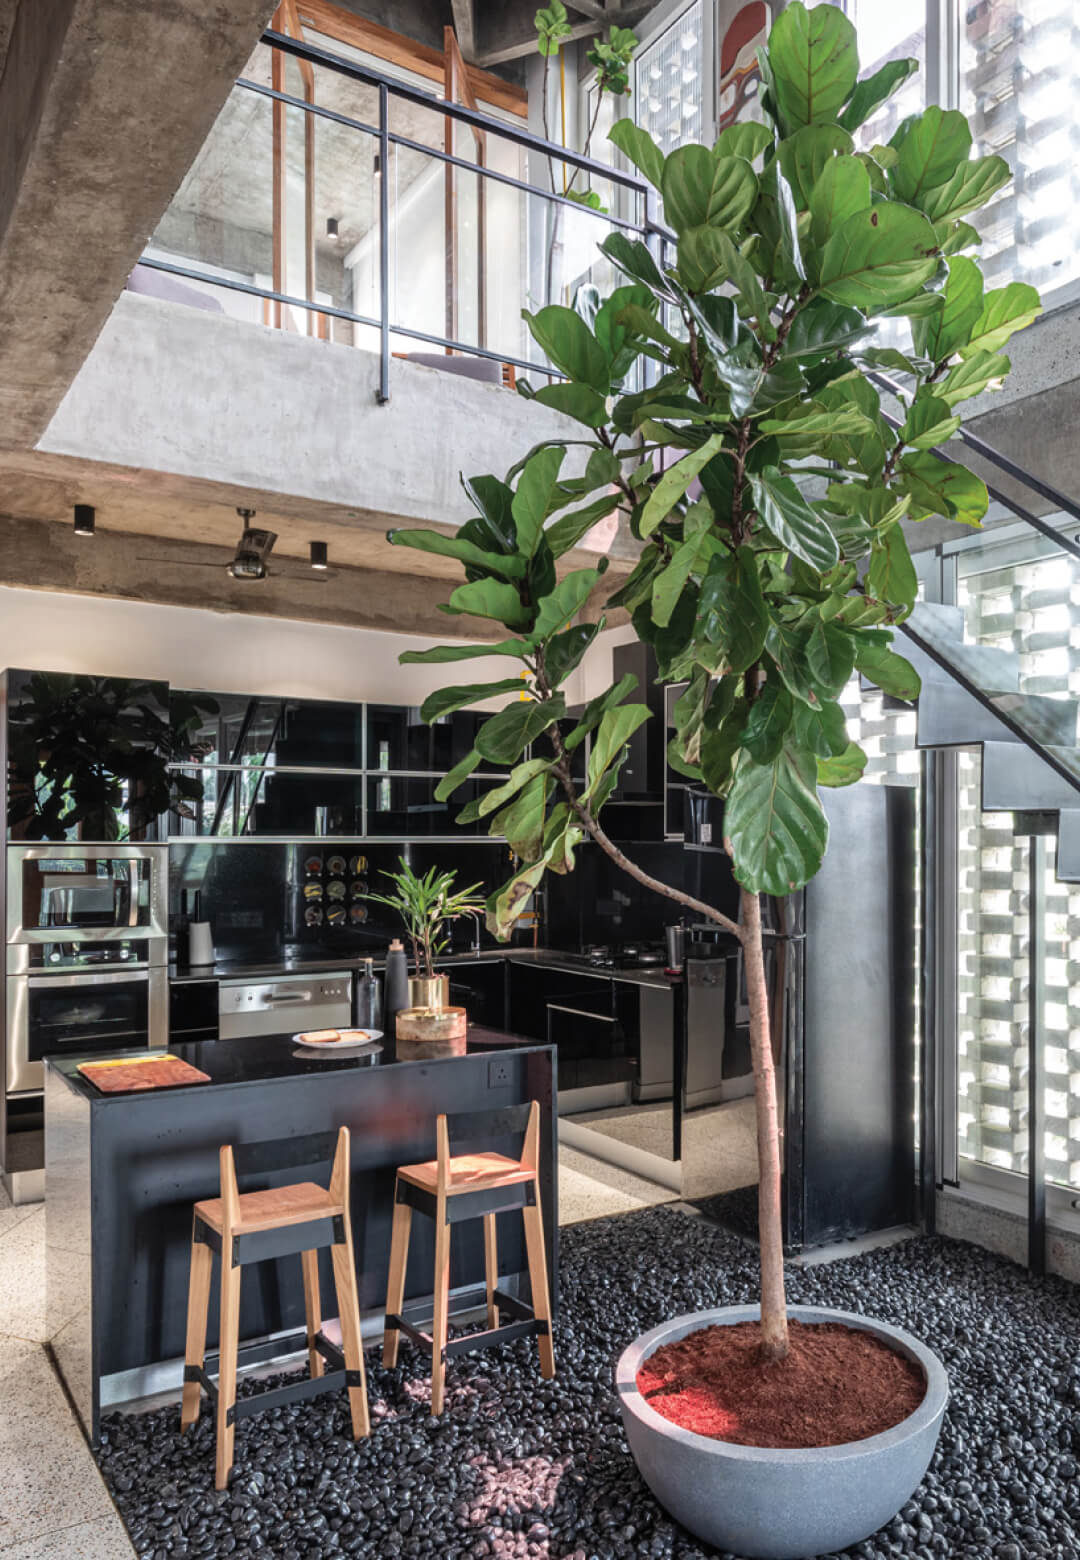 The House in 1970 by Architects Collaborative seeks to find an Indian aesthetic from the 70s | The House in 1970 | Architects Collaborative | STIRworld